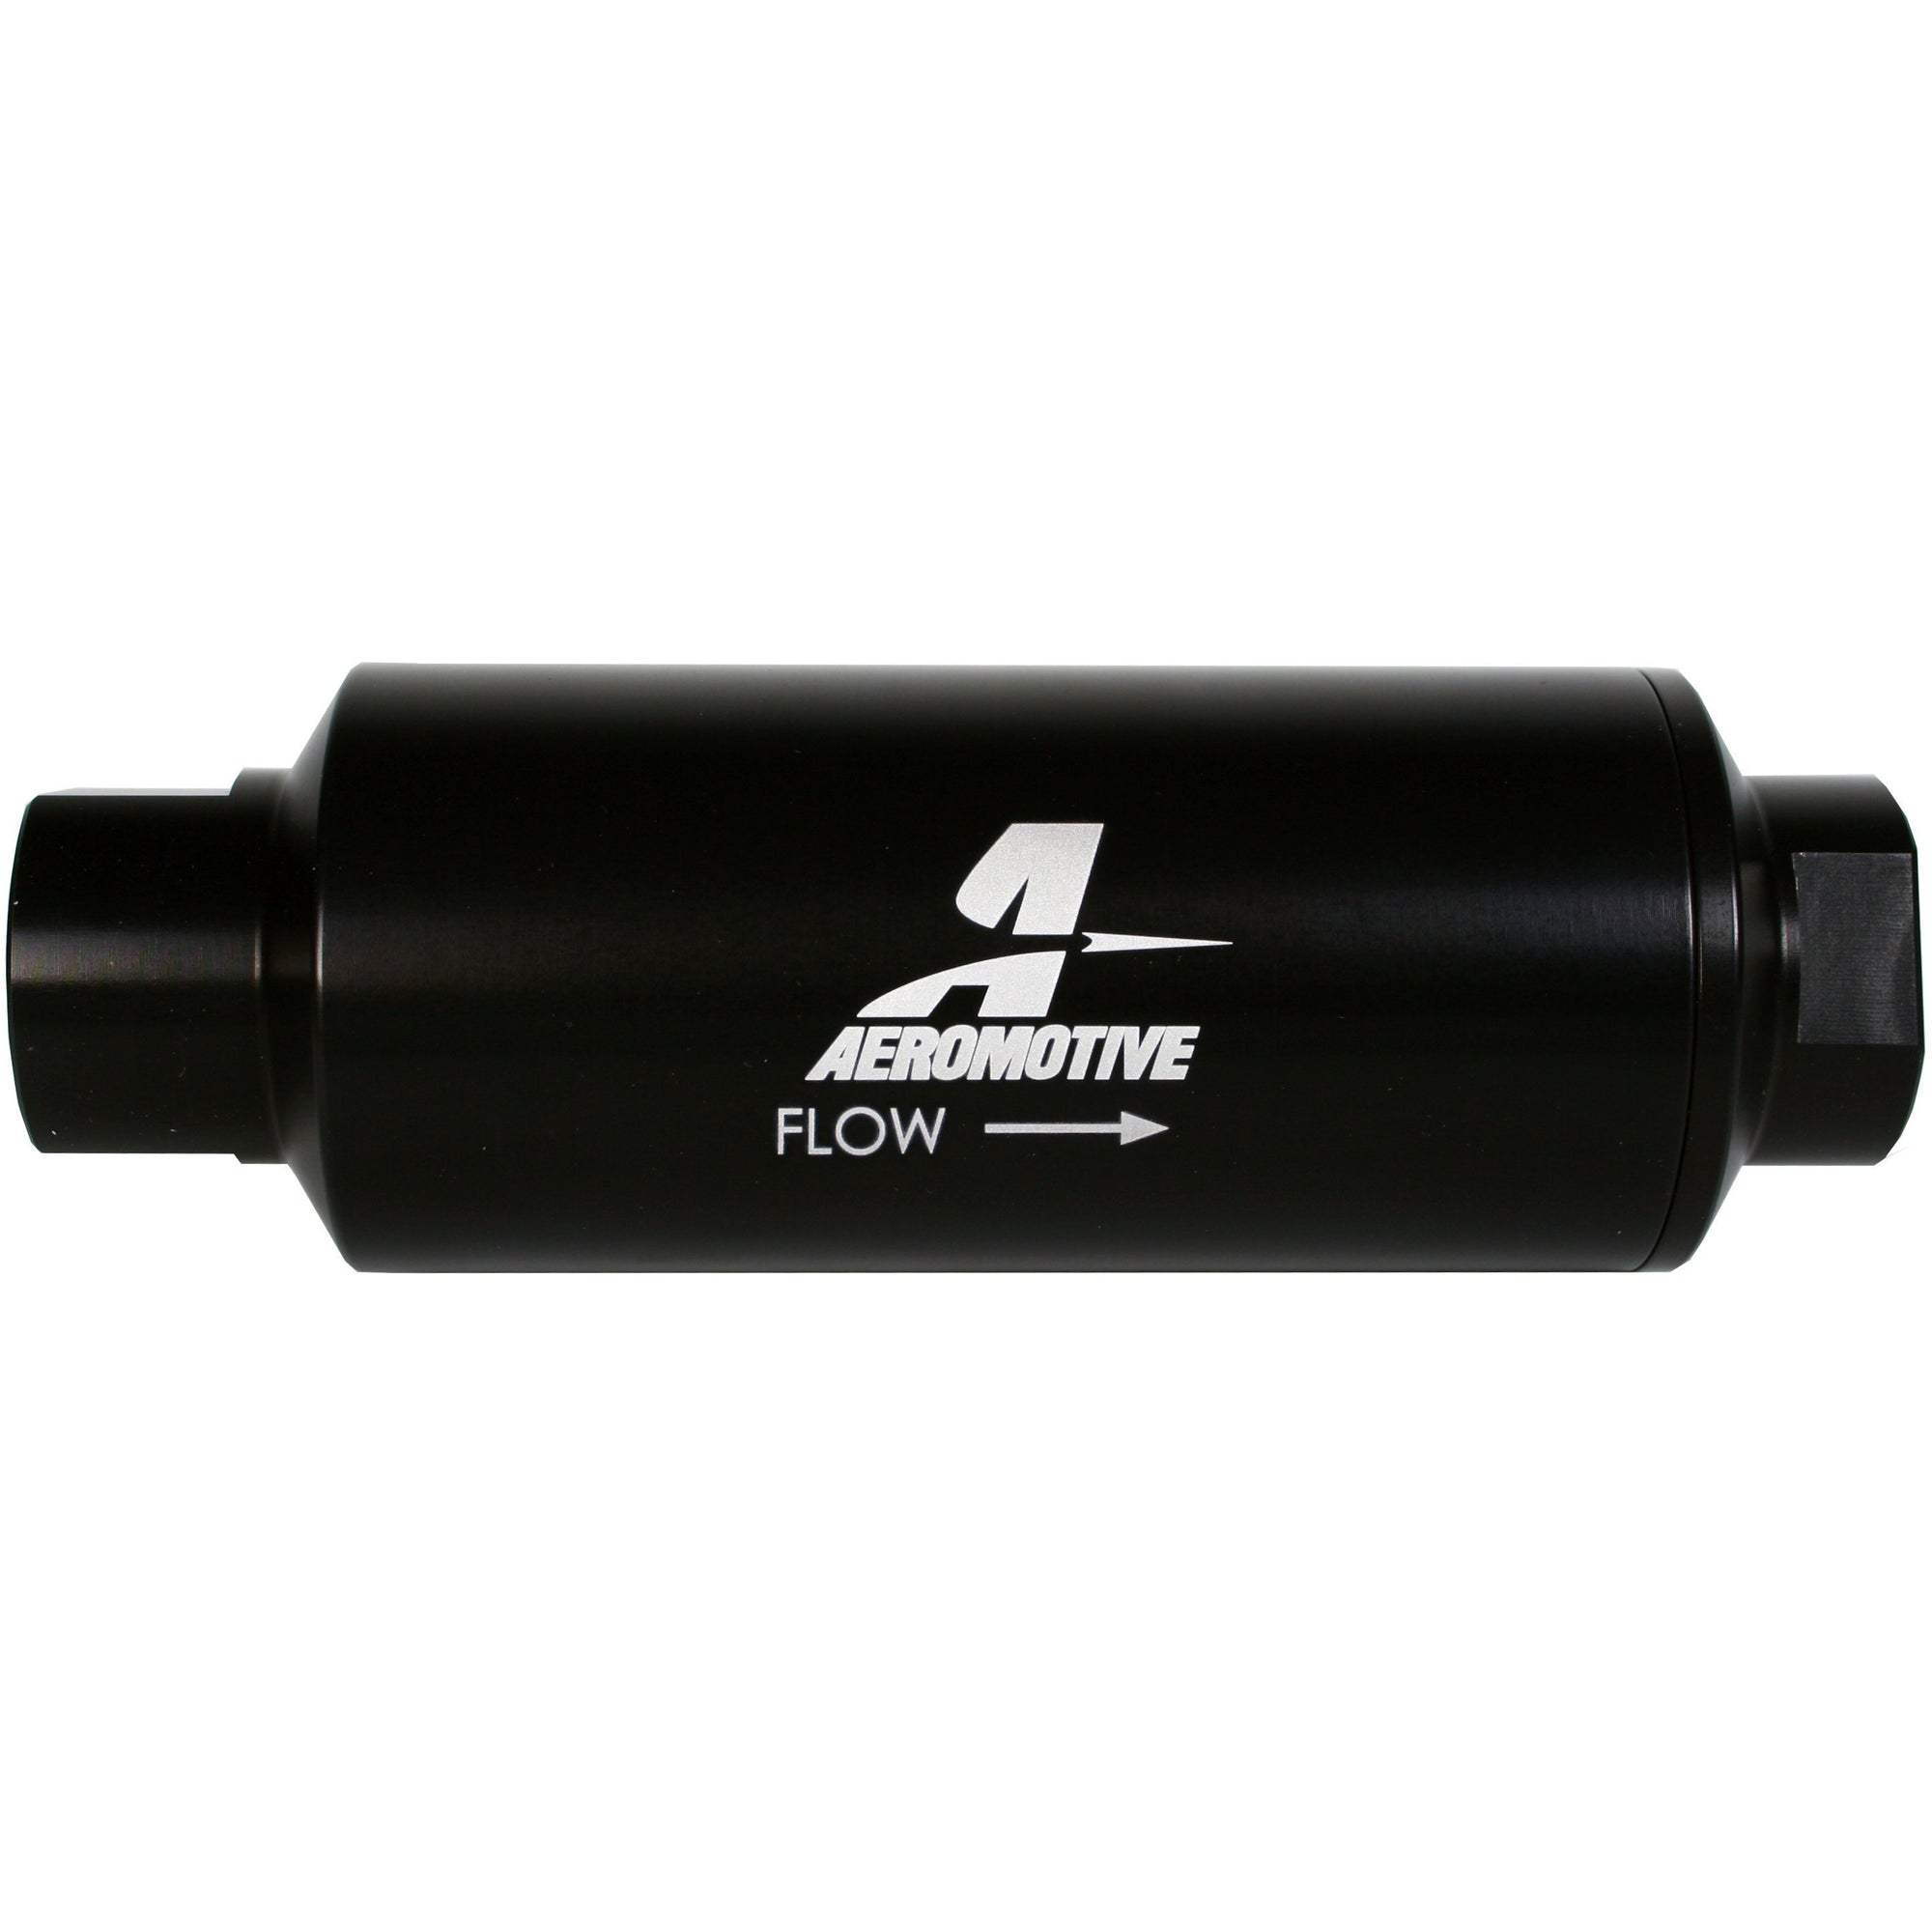 Aeromotive Female -10 AN ORB 10 Micron Microglass Filter 12350-Aeromotive-Motion Raceworks